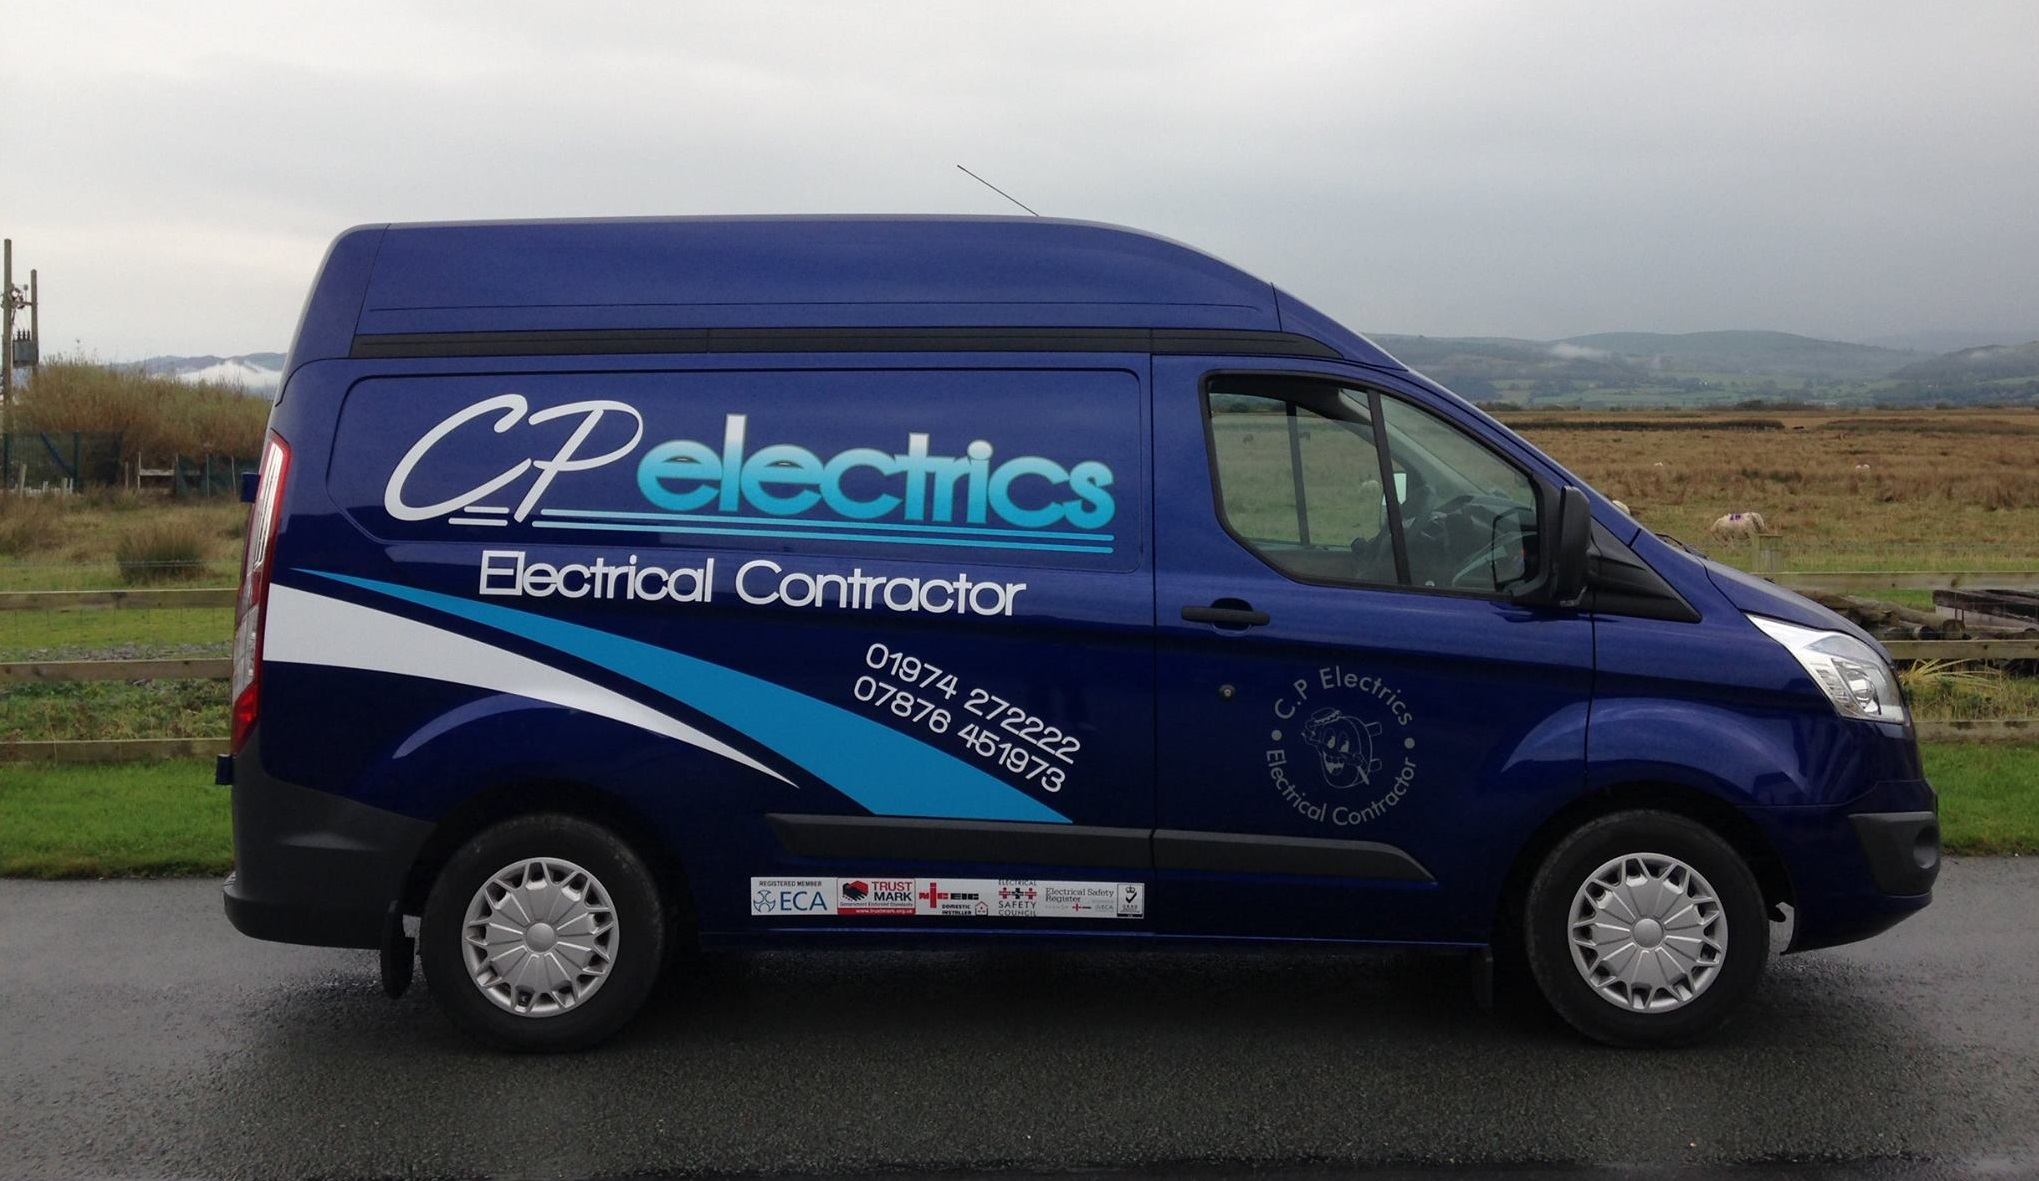 CP-Electrics-Van.jpg